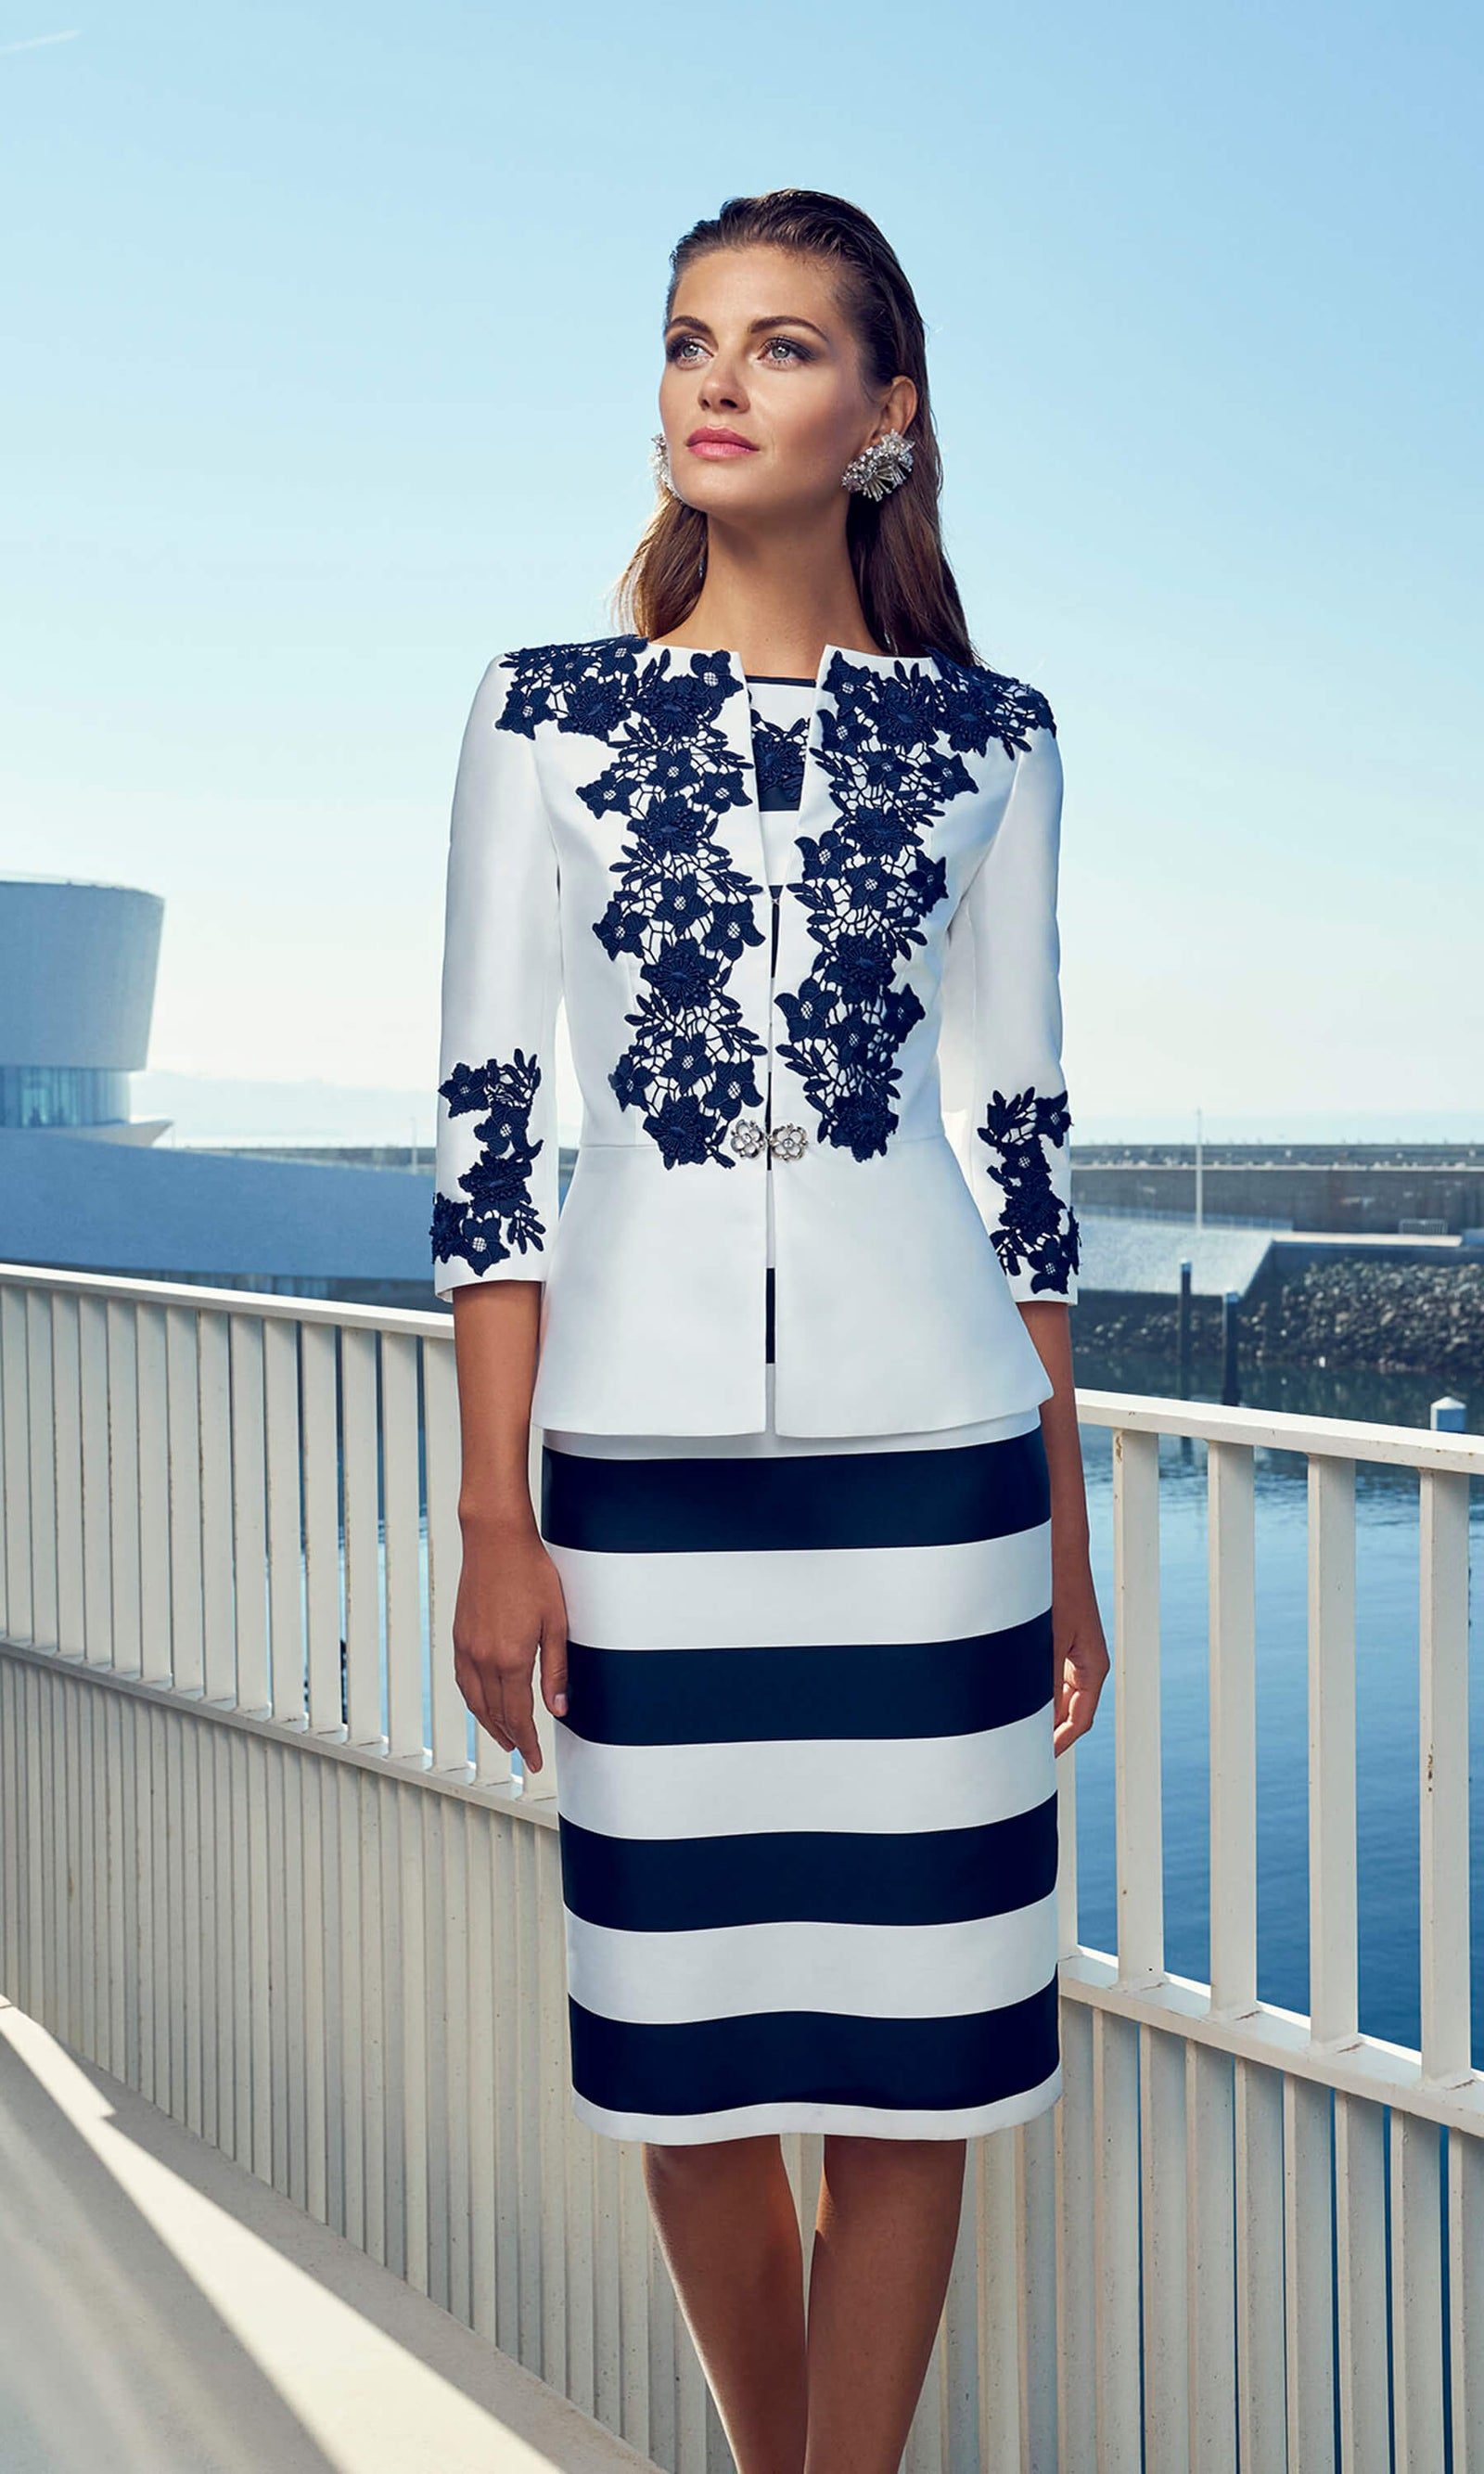 95679 Navy White Carla Ruiz Stripe Dress & Jacket - Fab Frocks